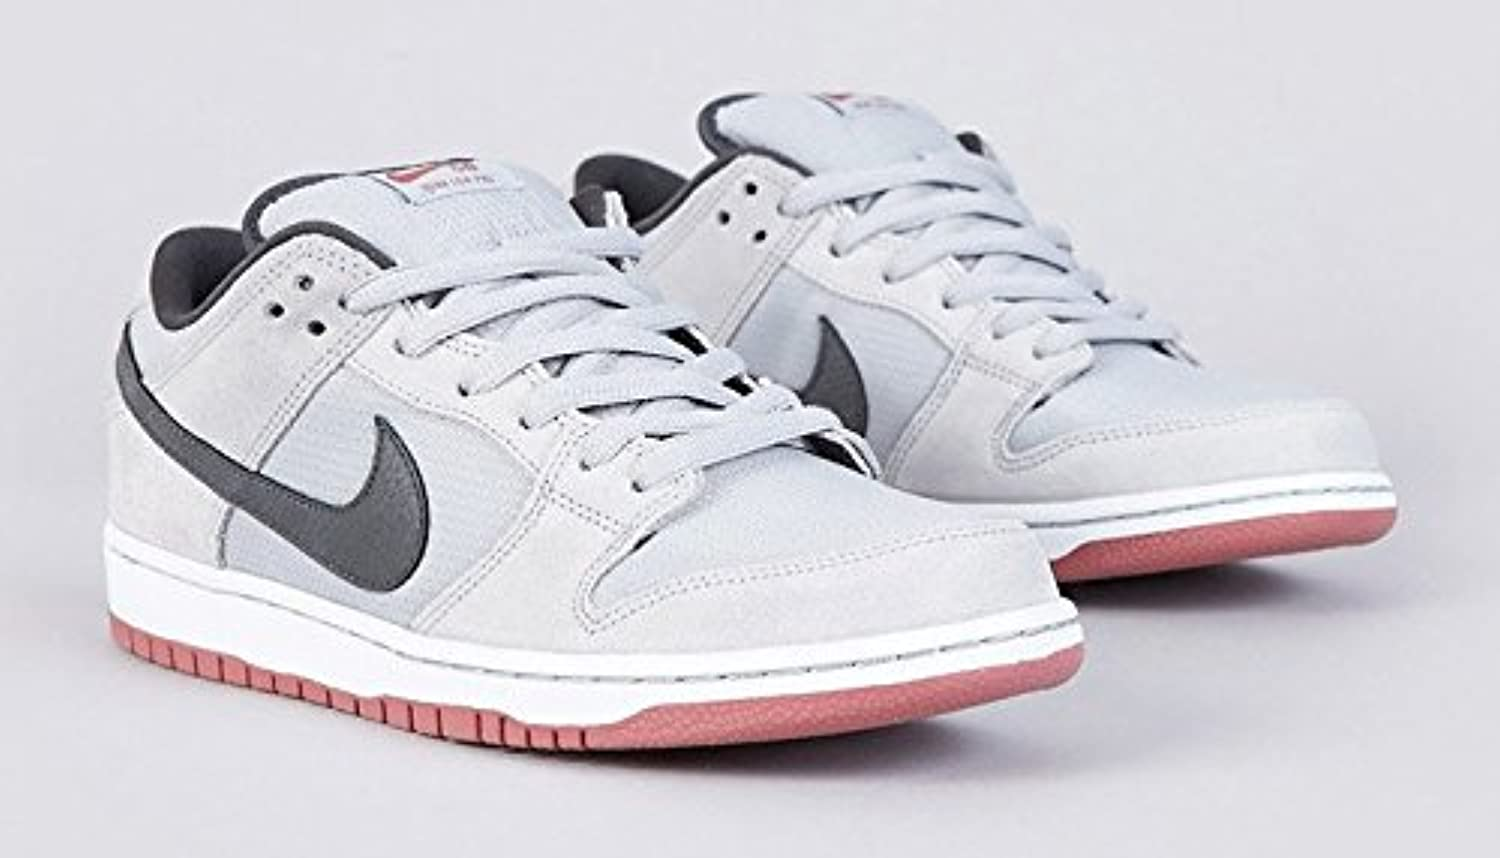 Nike Sb Dunk Low Pro Wolf Grey Antracite, 6 (US) M